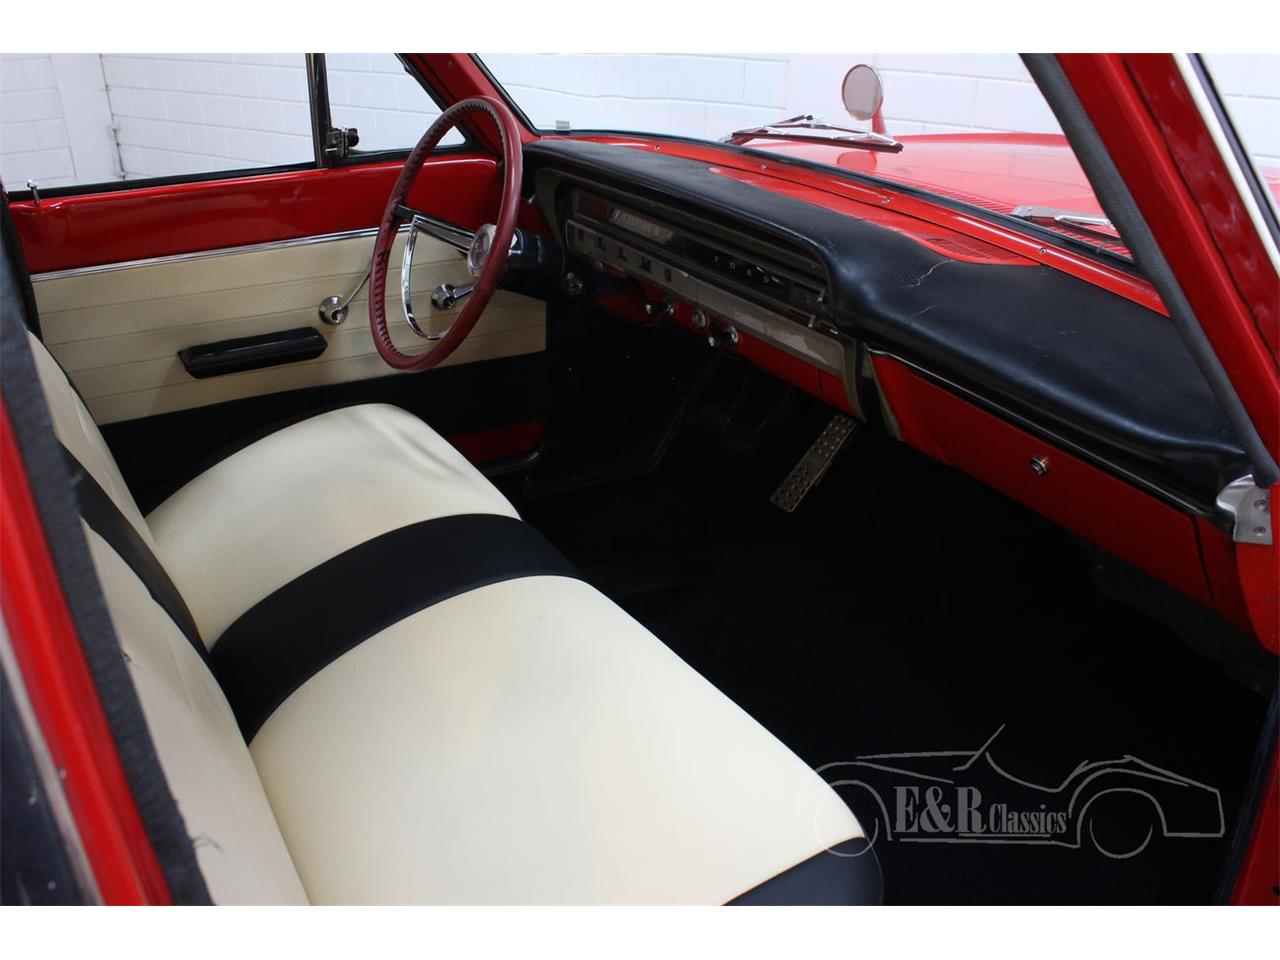 1965 Ford Fairlane 500 (CC-1416524) for sale in Waalwijk, Noord Brabant